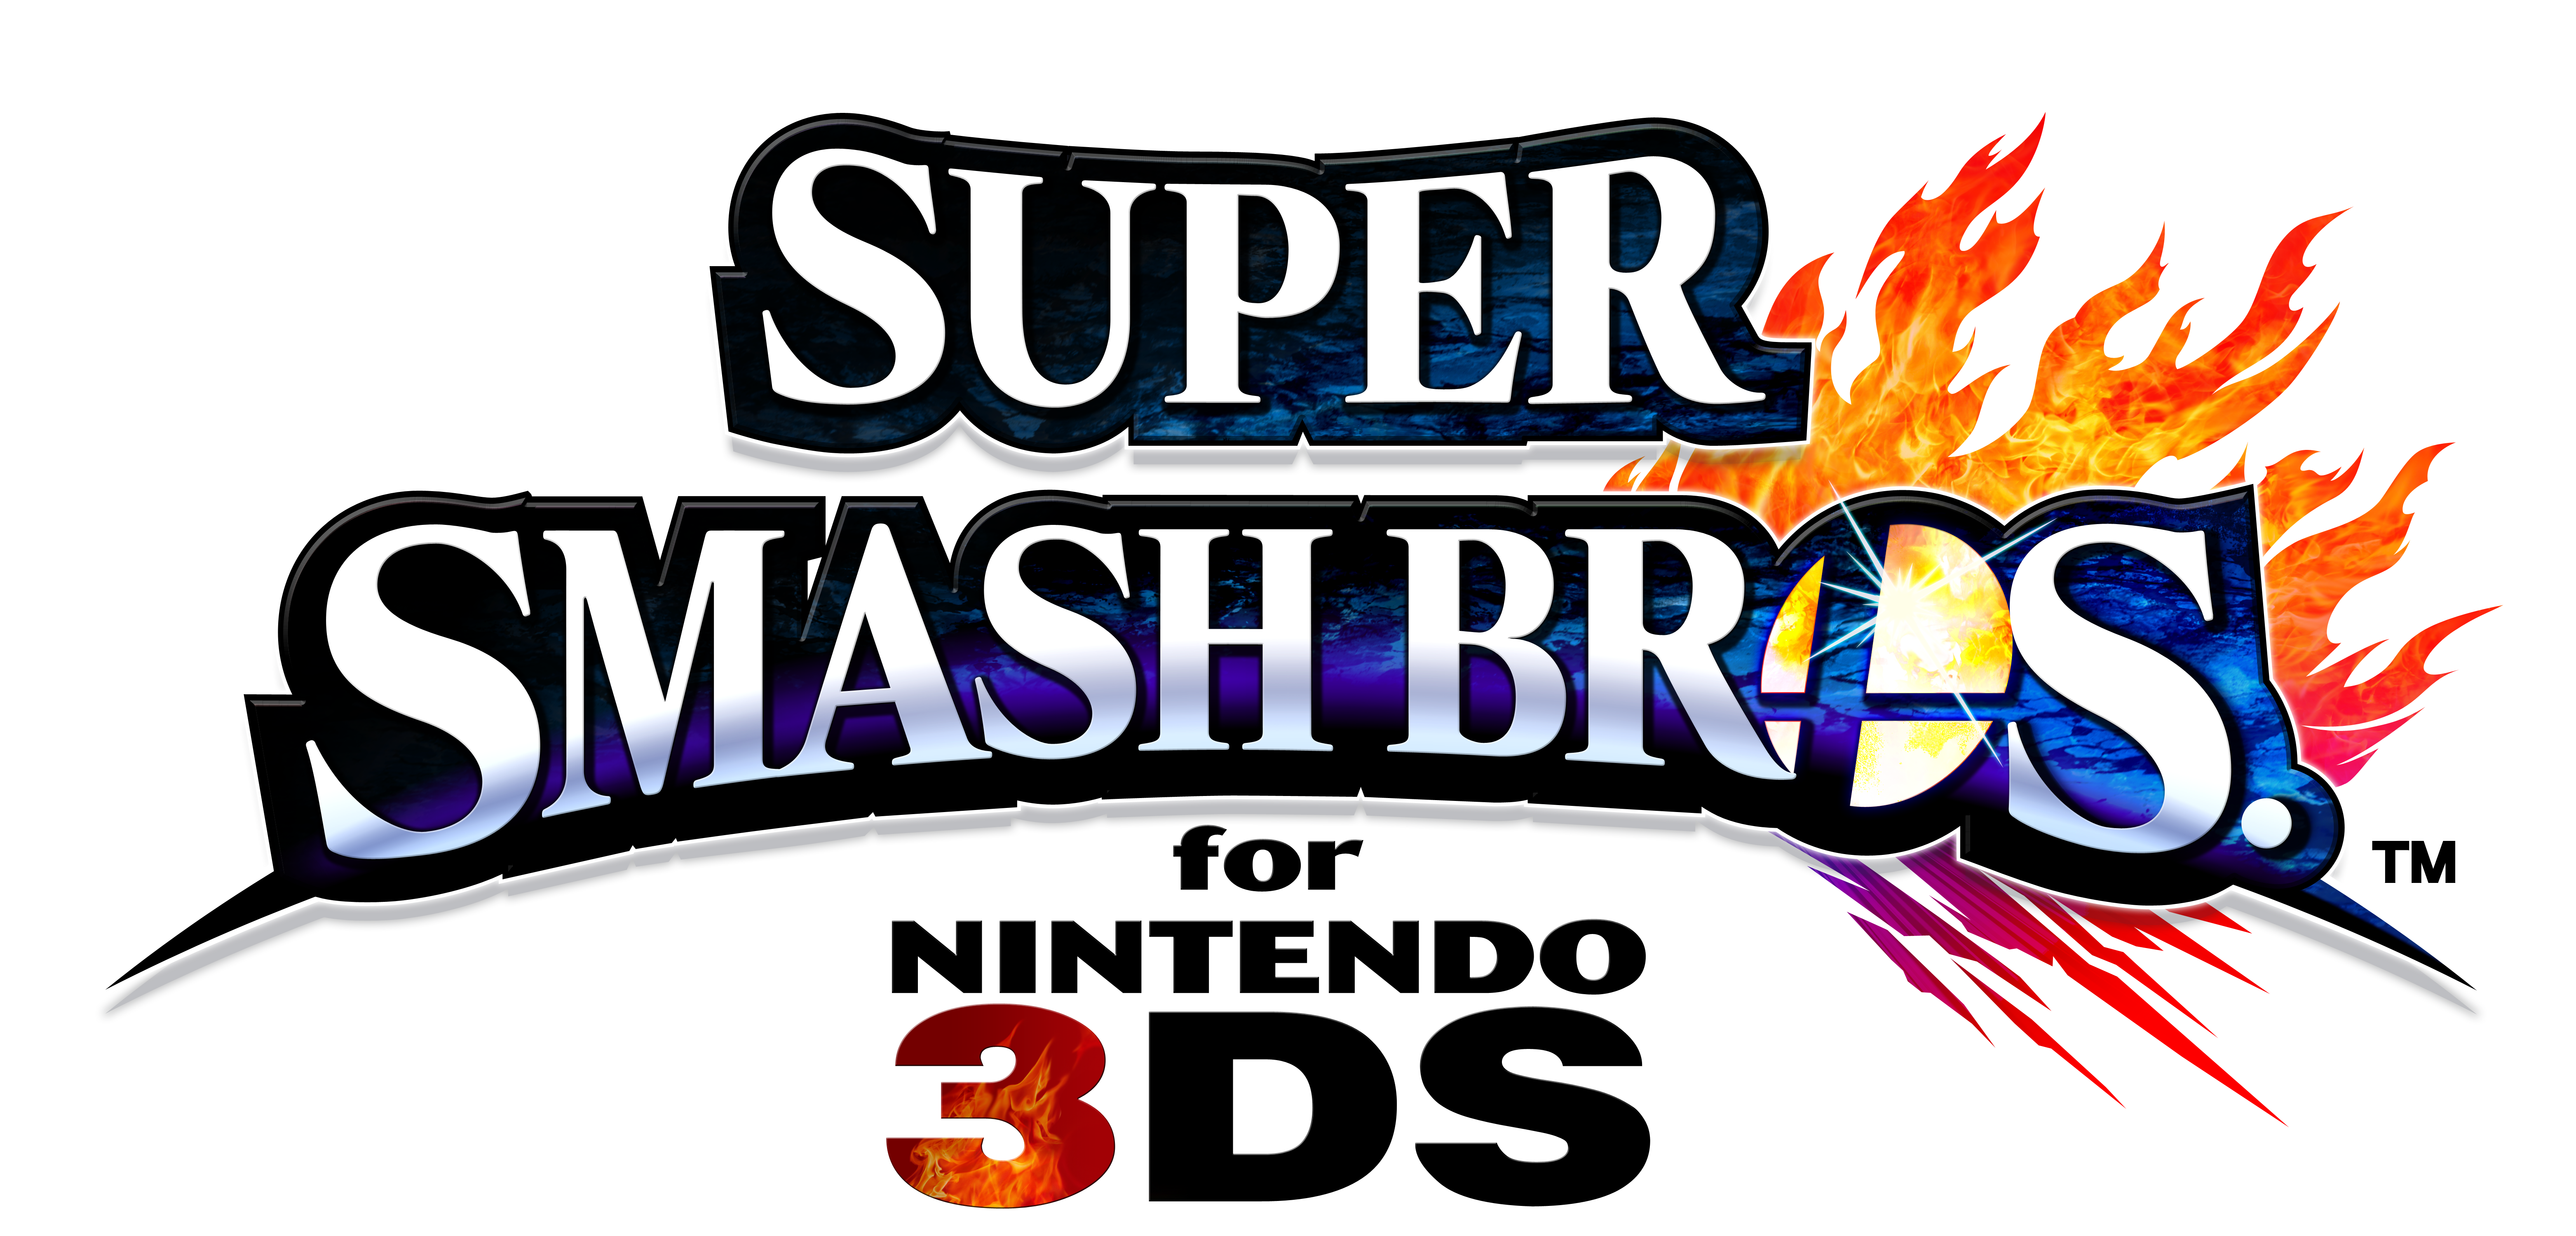 super smash bros wii u 3ds characters logos and